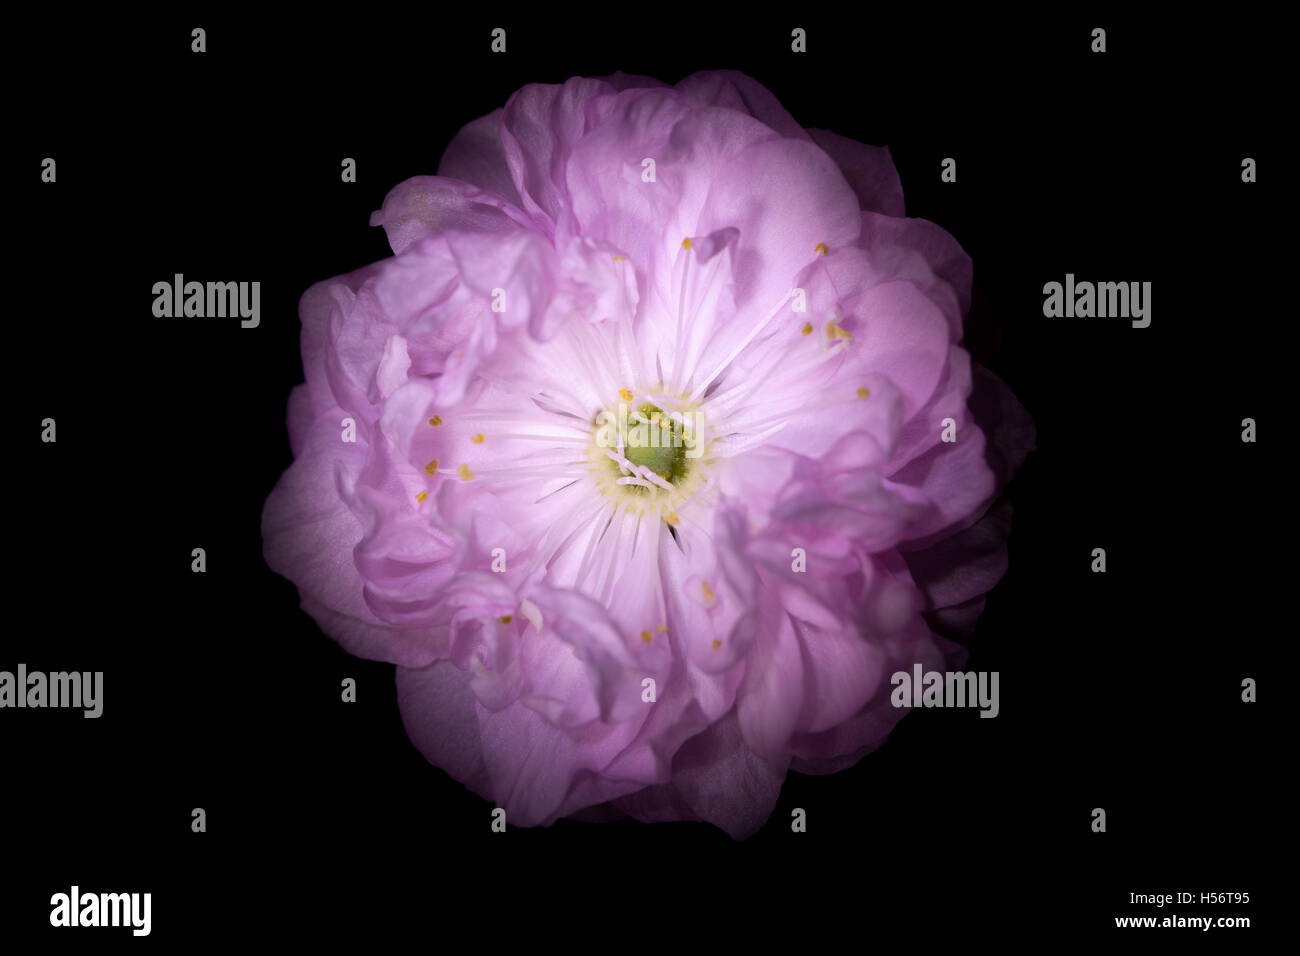 Pink Flower With Round Petals Like Petunia Isolated On Black Stock